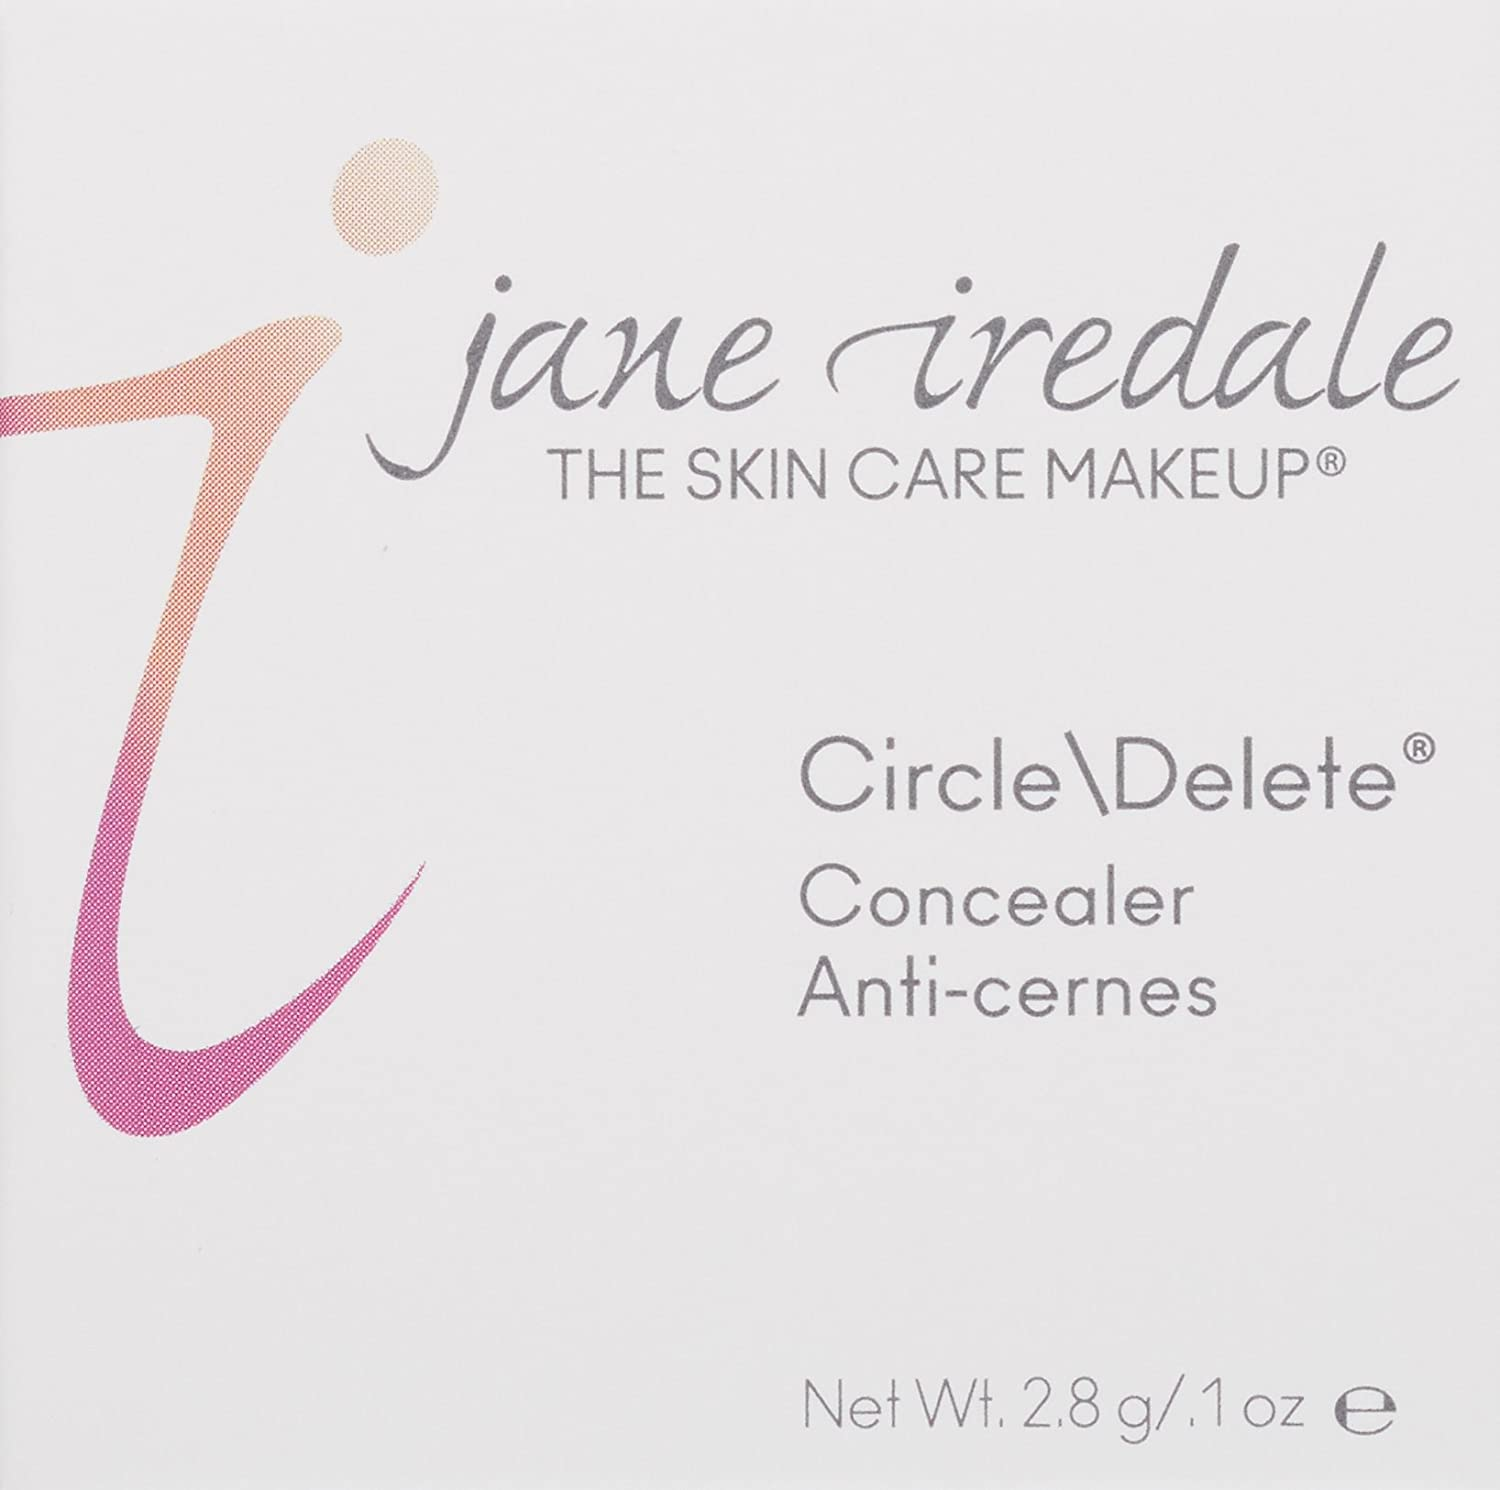 Circle/Delete Concealer by Jane Iredale #12